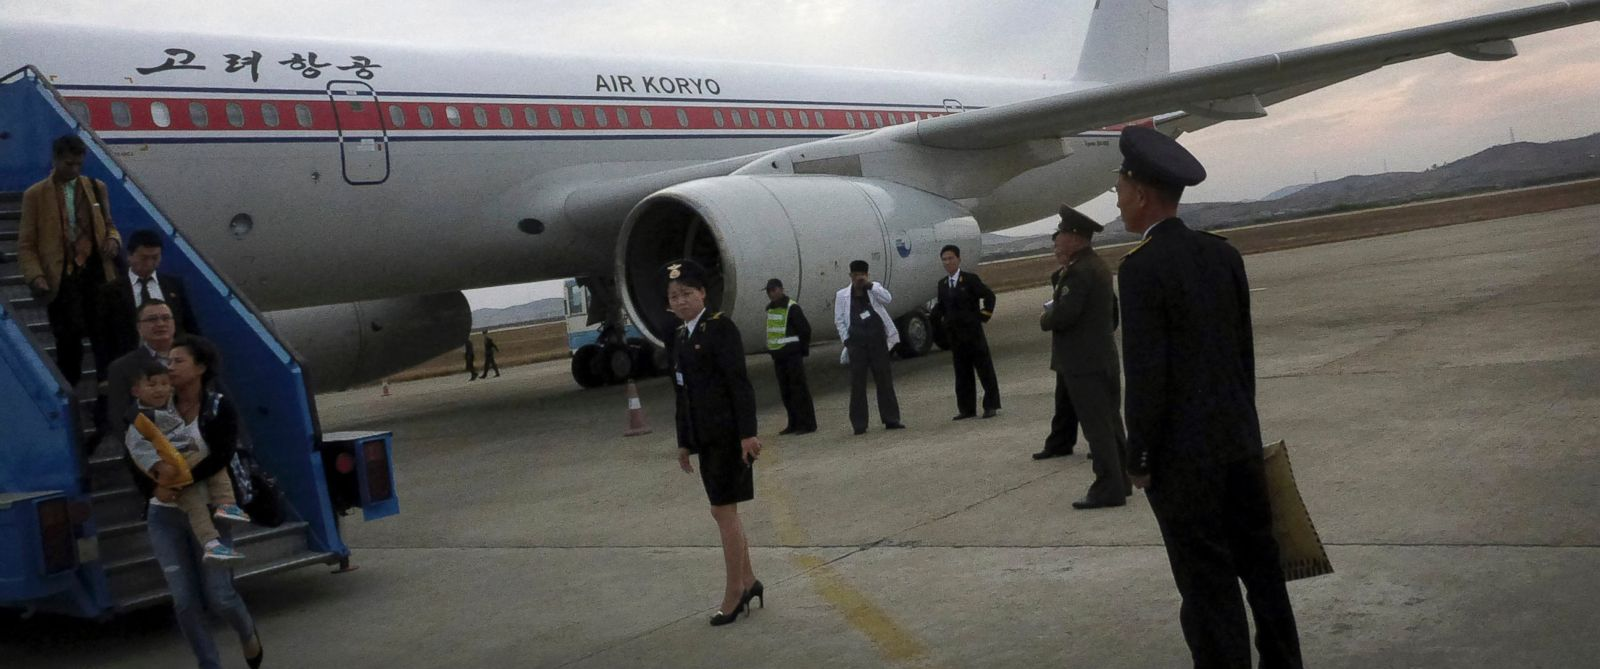 PHOTO: Passengers disembark an Air Koryo flight in Pyongyang, North Korea on Oct. 21, 2014.